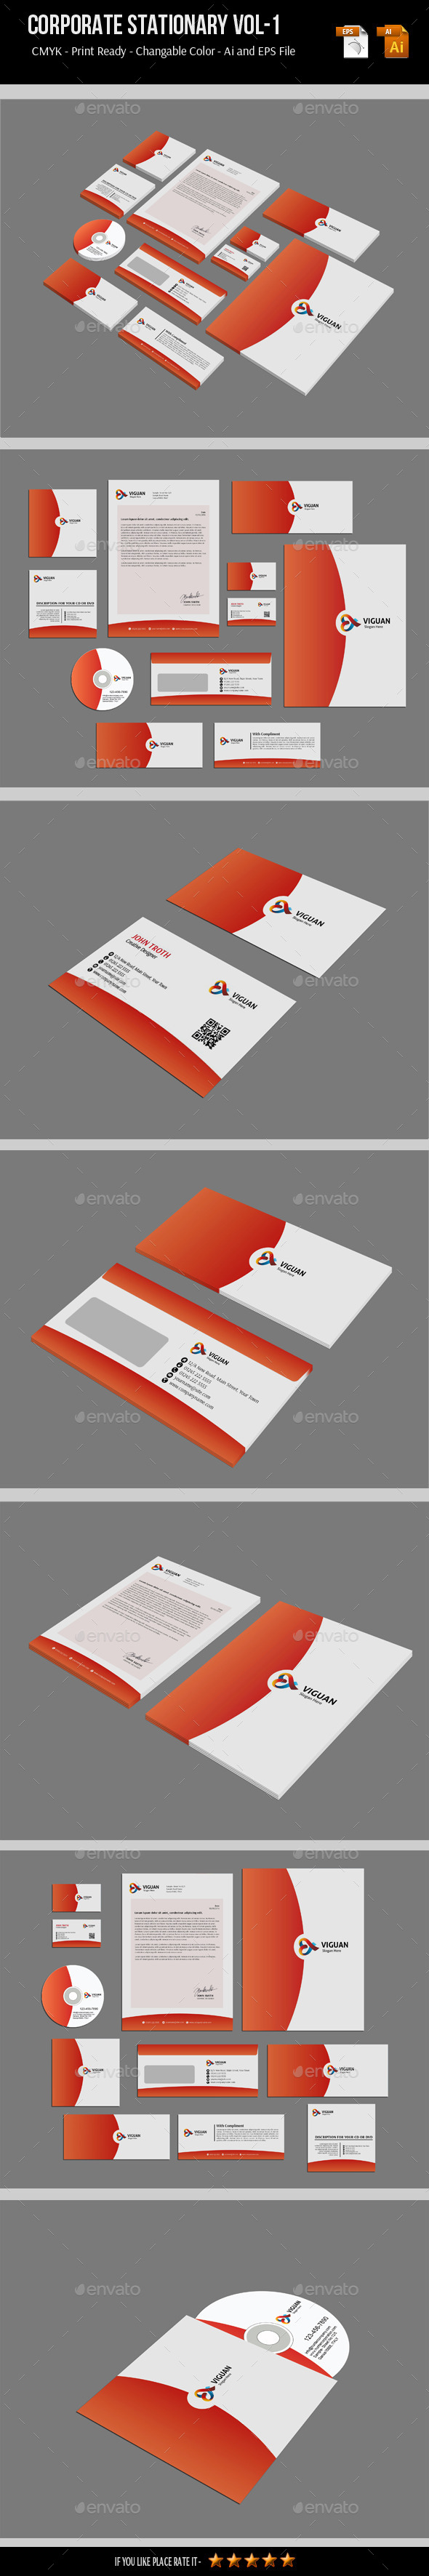 GraphicRiver Corporate Stationary Vol-1 7200802